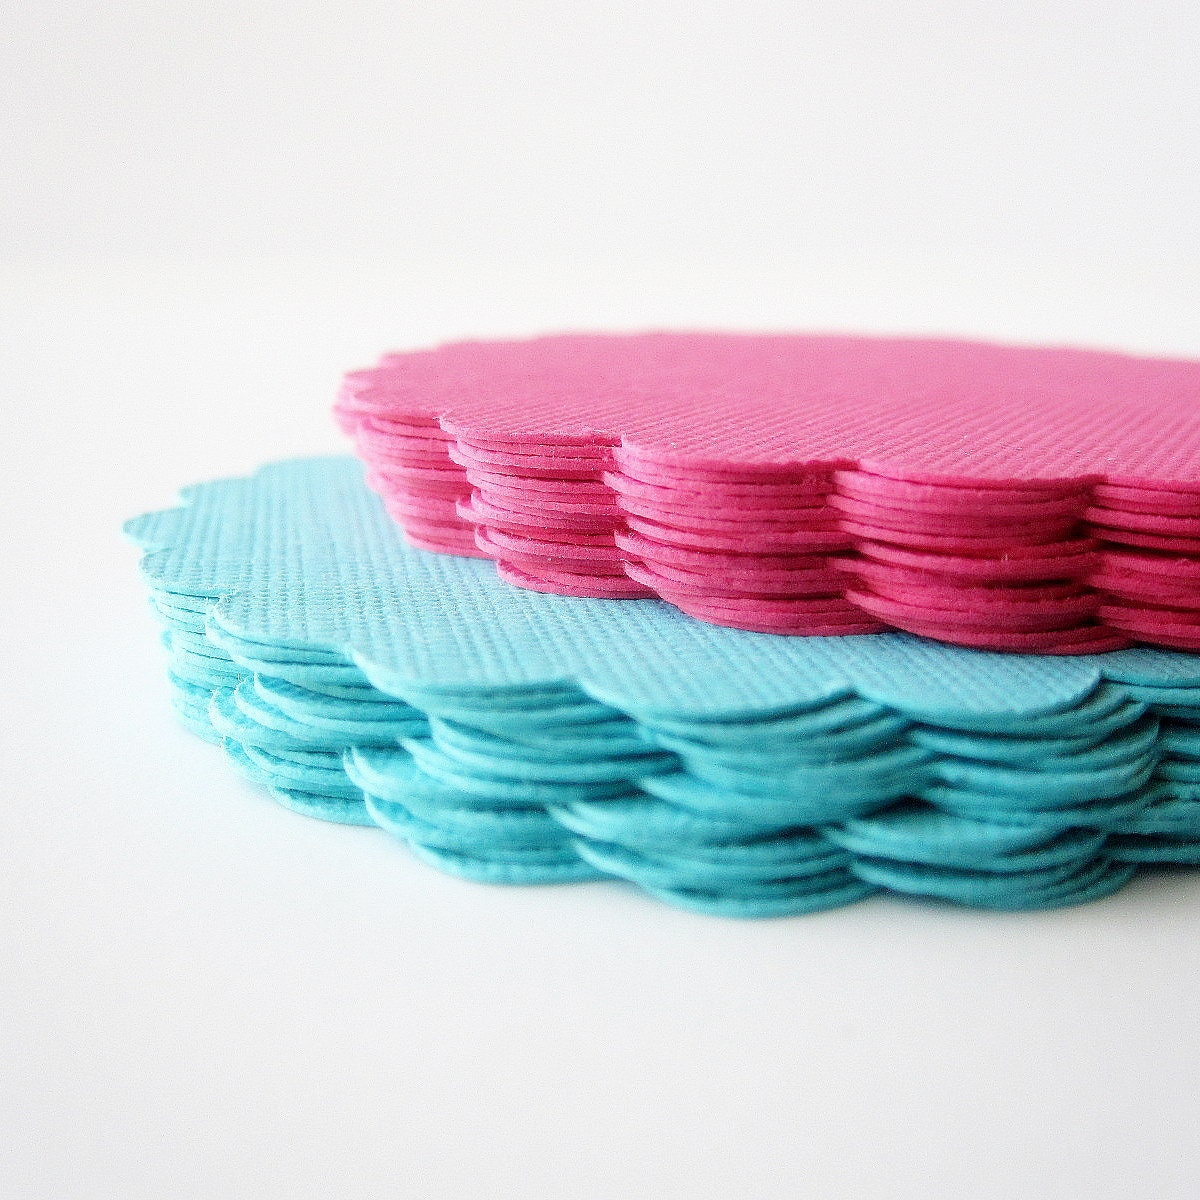 32 Scalloped Circles (2.5 inches) in Teal and Hot Pink paper Textured Cardstock - Mariapalito